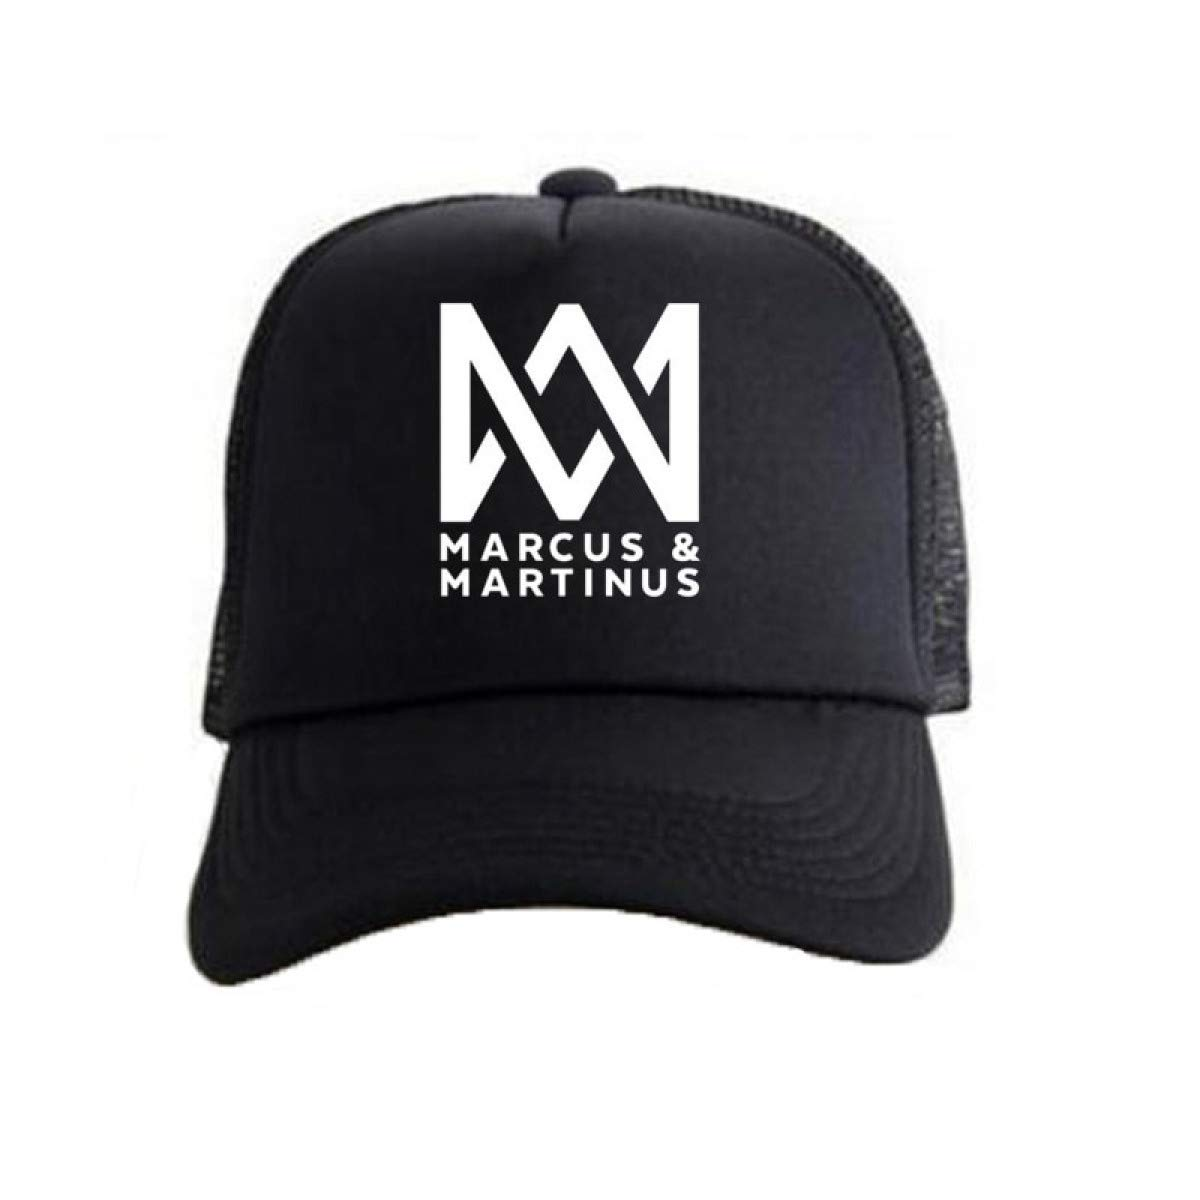 Marcus and Martinus Baseball Cap Caps Letters Printed Mesh Net Trucker Sun Hats at Amazon Mens Clothing store: